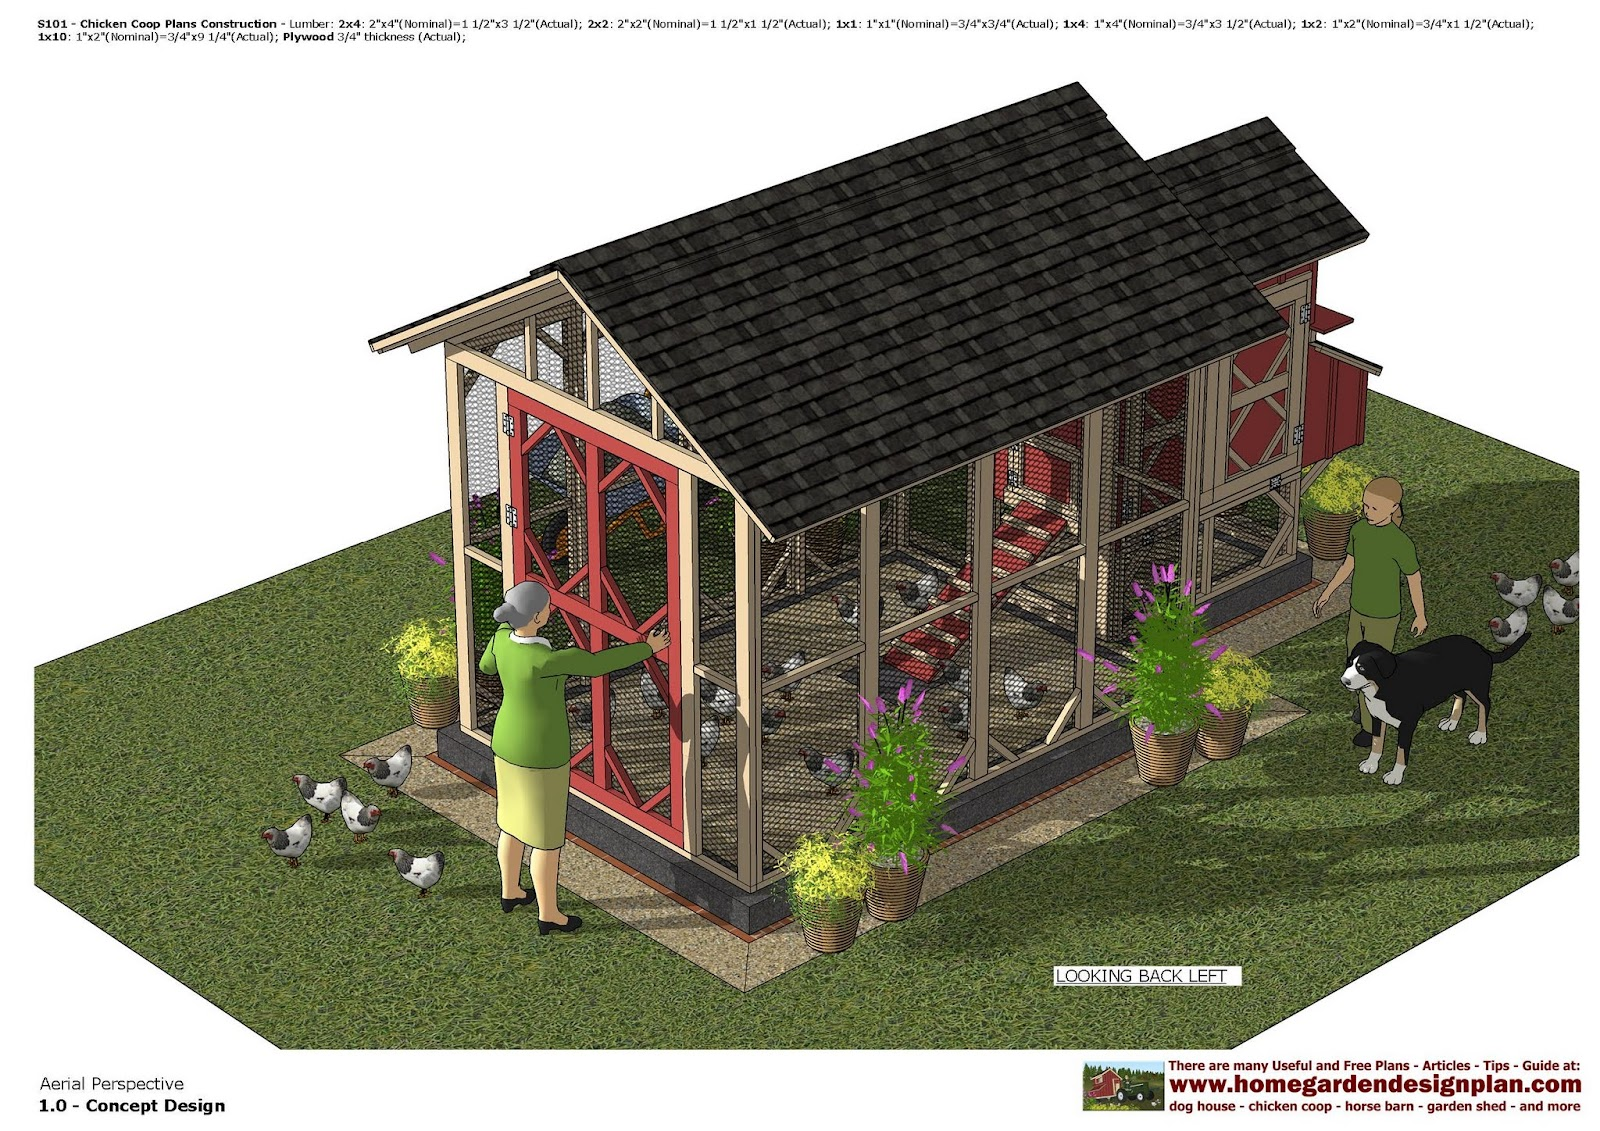 Home garden plans s101 chicken coop plans chicken for Chicken coop size for 6 chickens